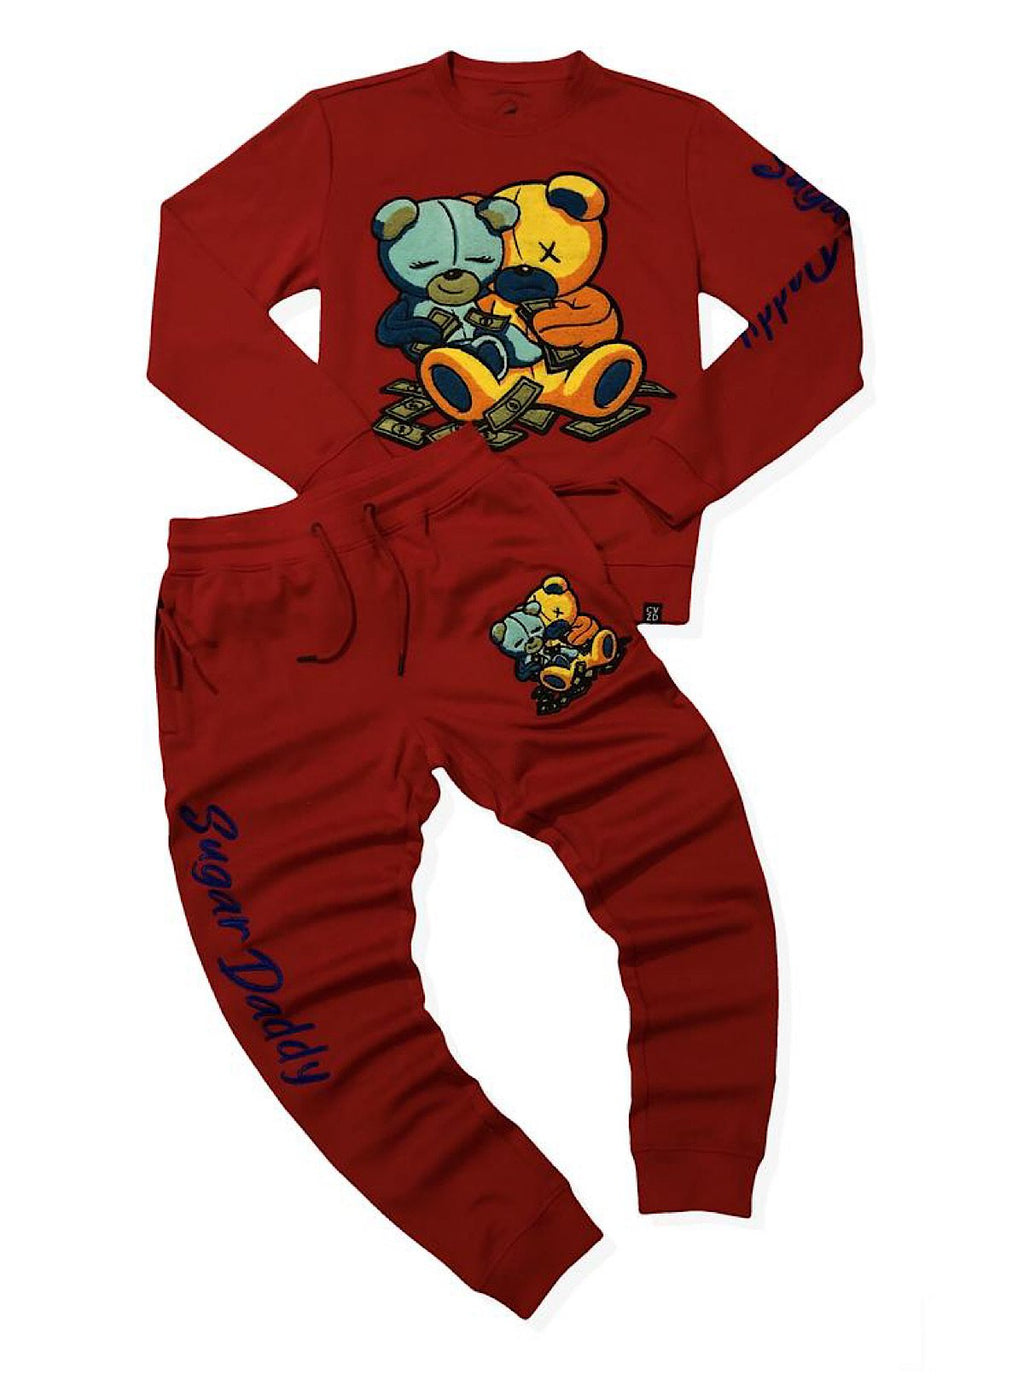 Civilized Sweatsuit - Double Sugar Daddy - Red